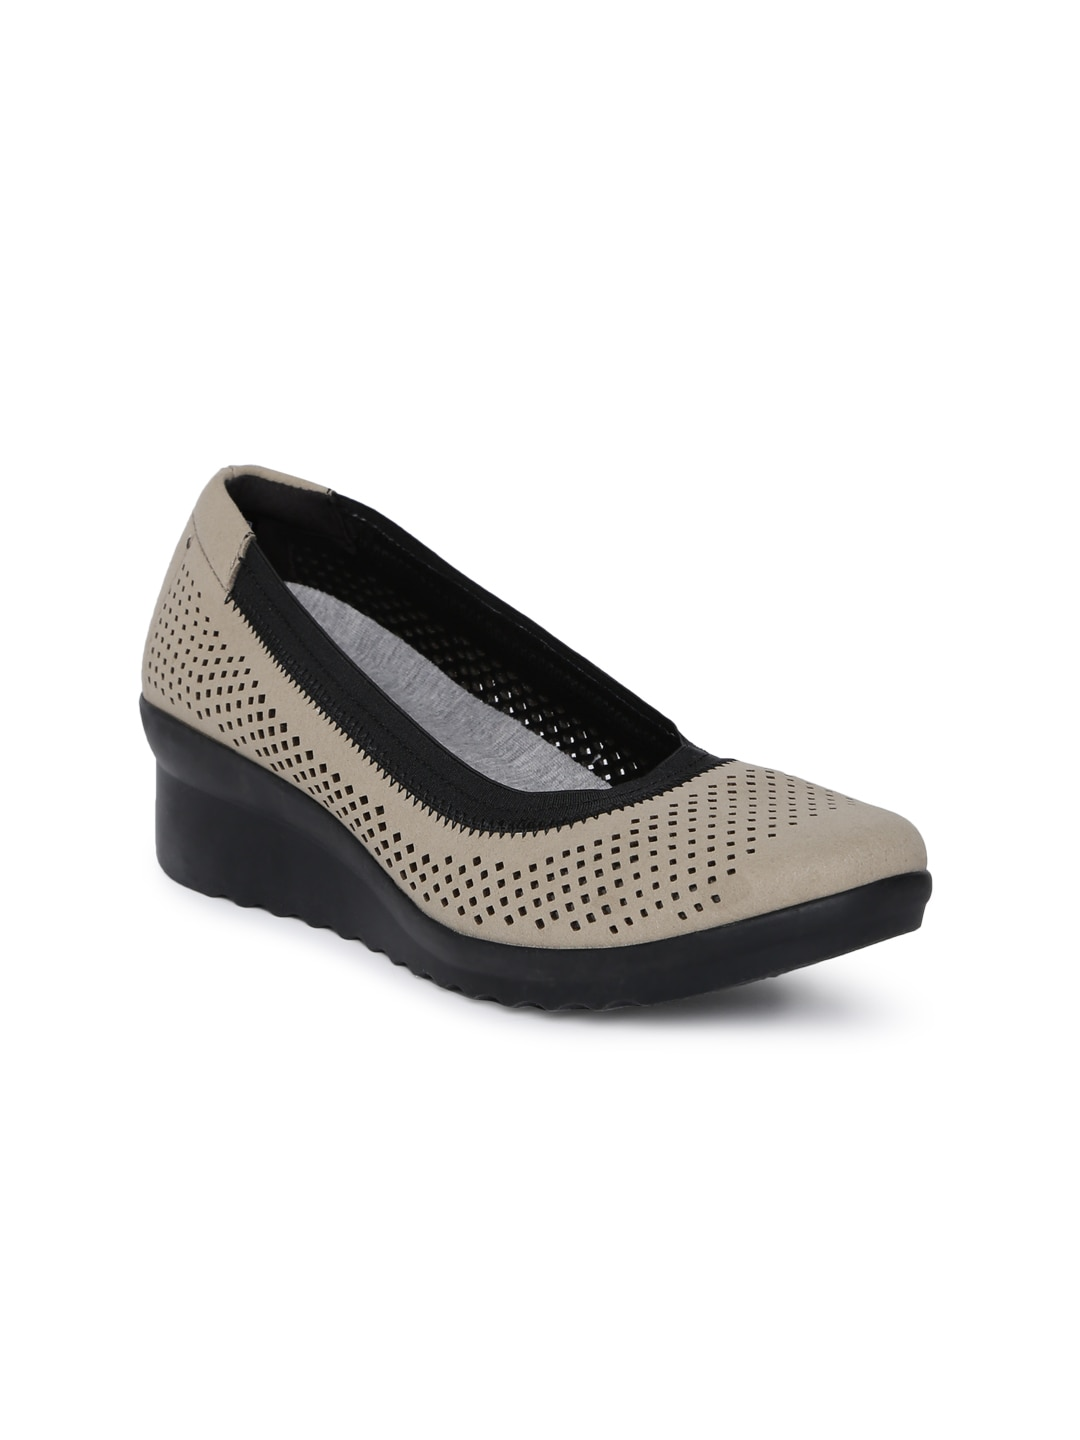 a9a0cb2597f Women s Clarks Shoes - Buy Clarks Shoes for Women Online in India